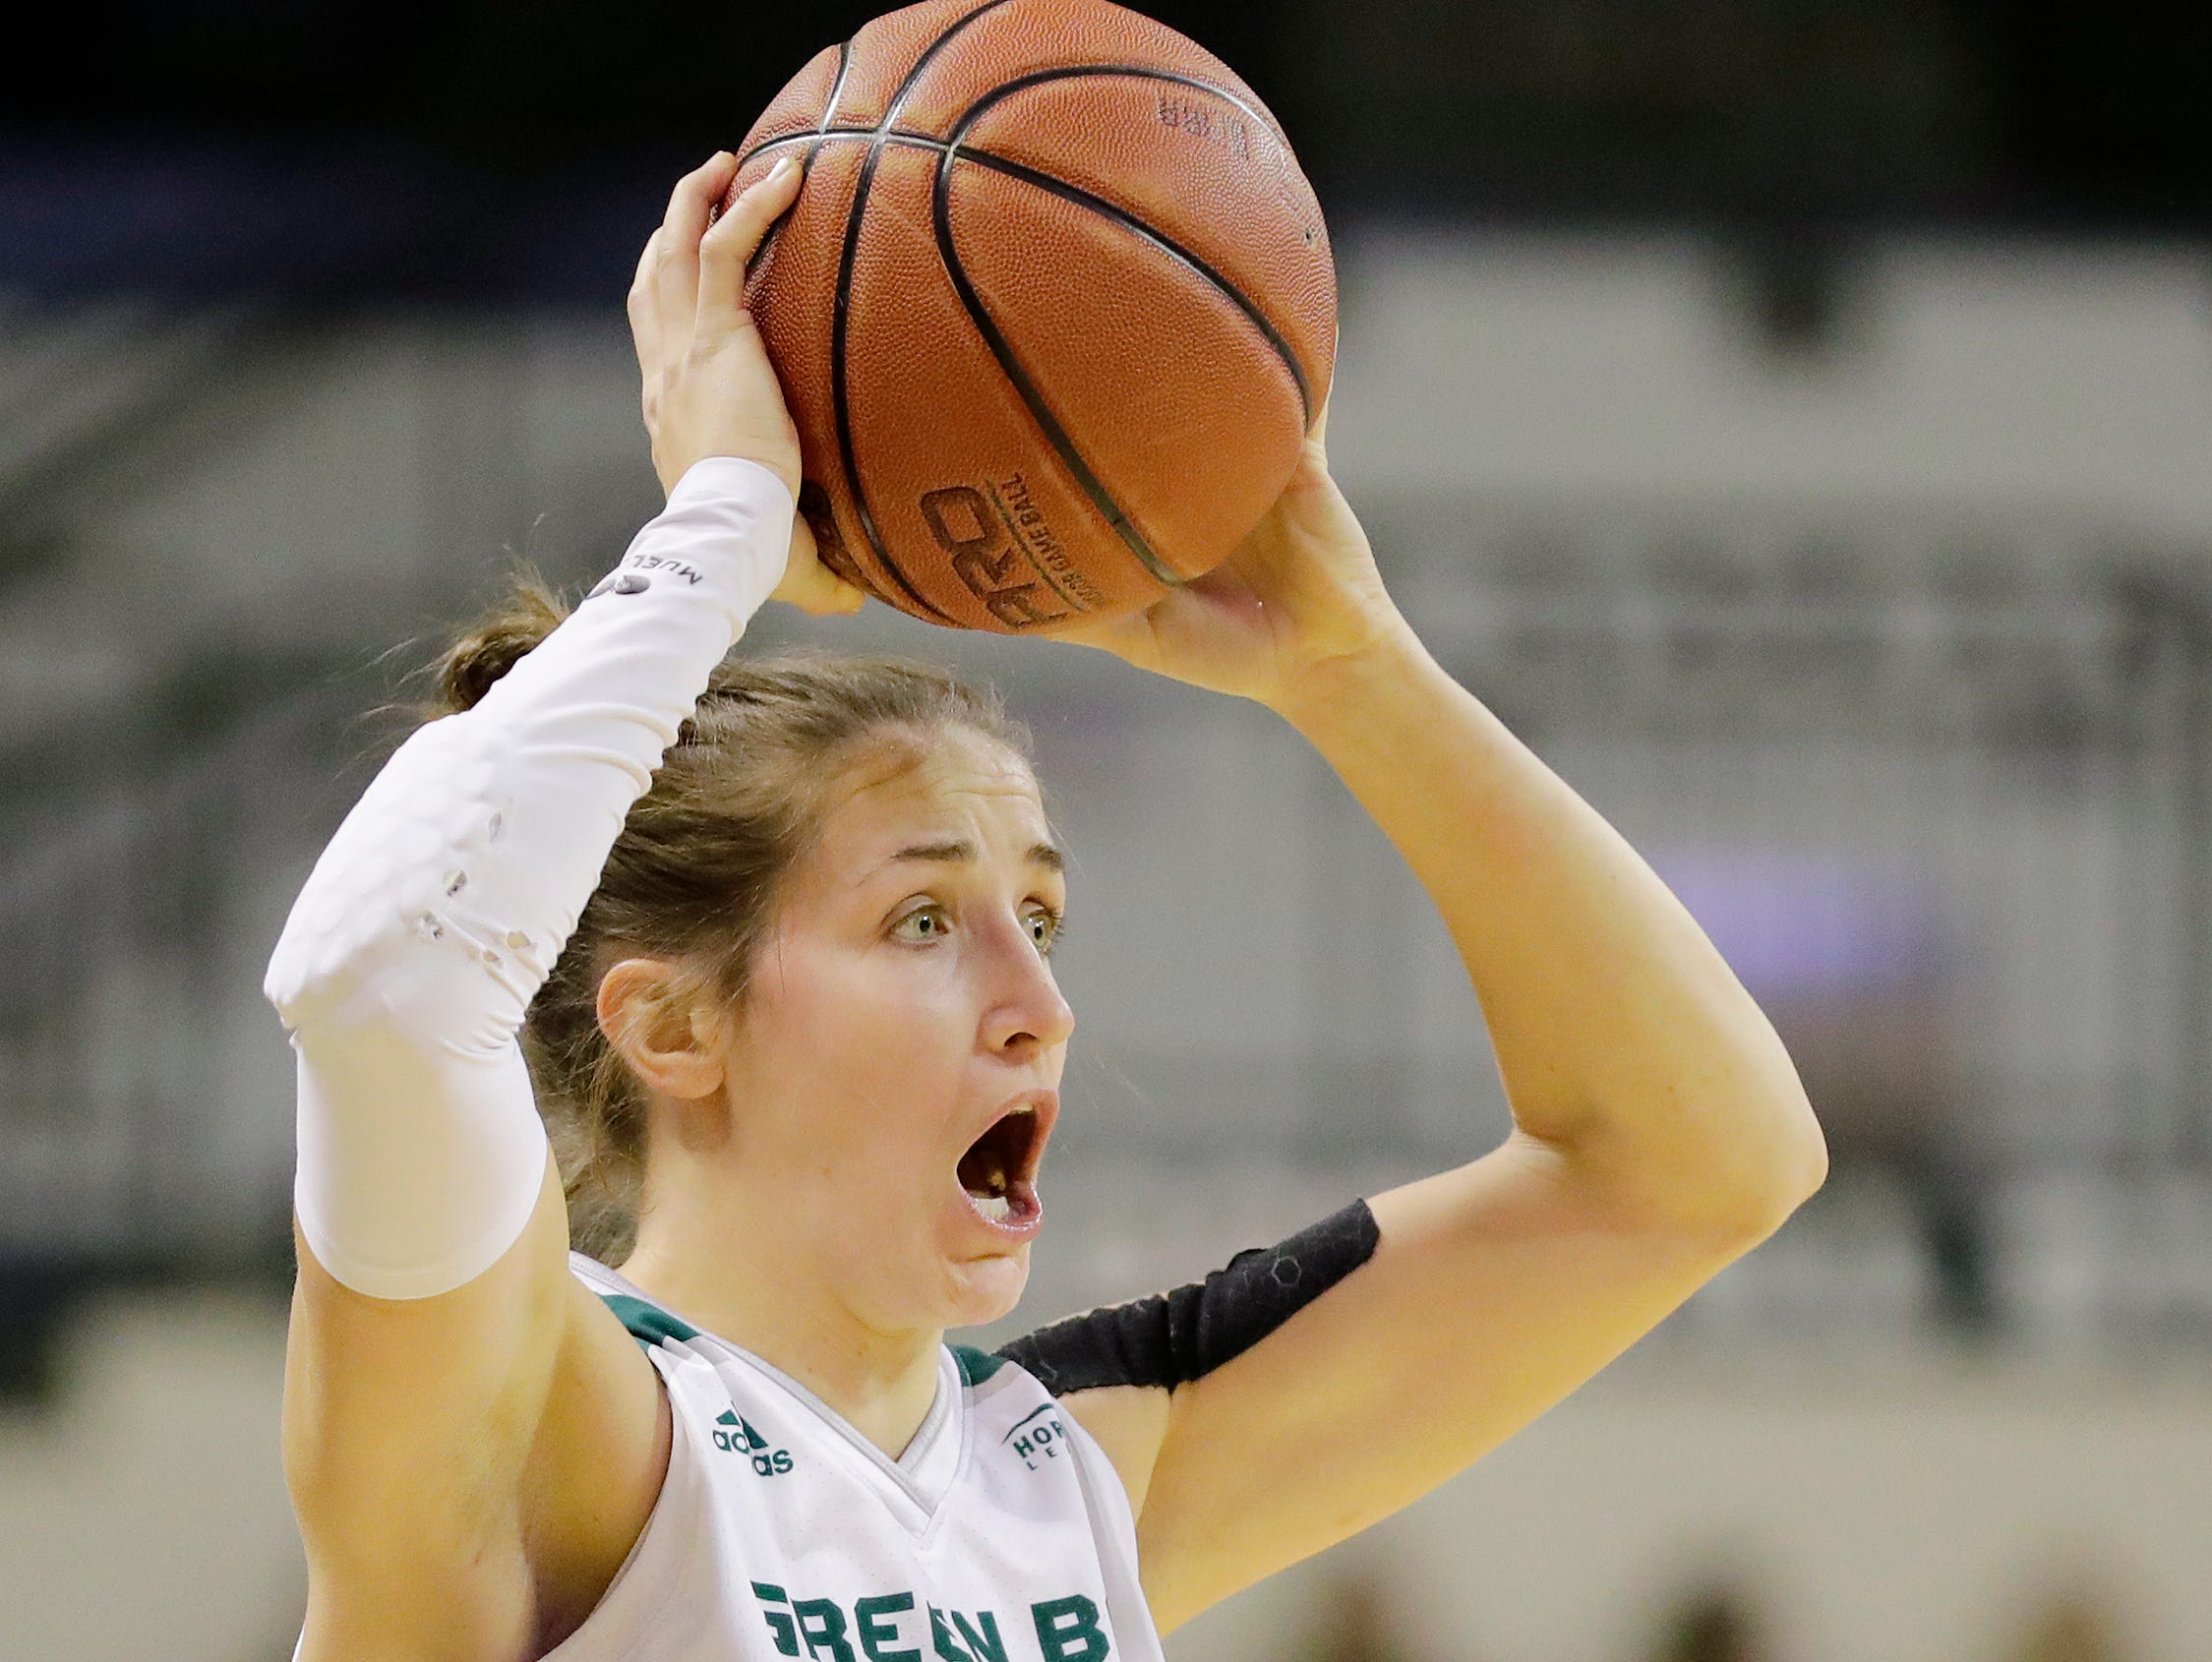 Green Bay Phoenix guard Jen Wellnitz (1) shouts instructions in a Horizon League women's basketball game at the Kress Center on Thursday, February 7, 2019 in Green Bay, Wis.